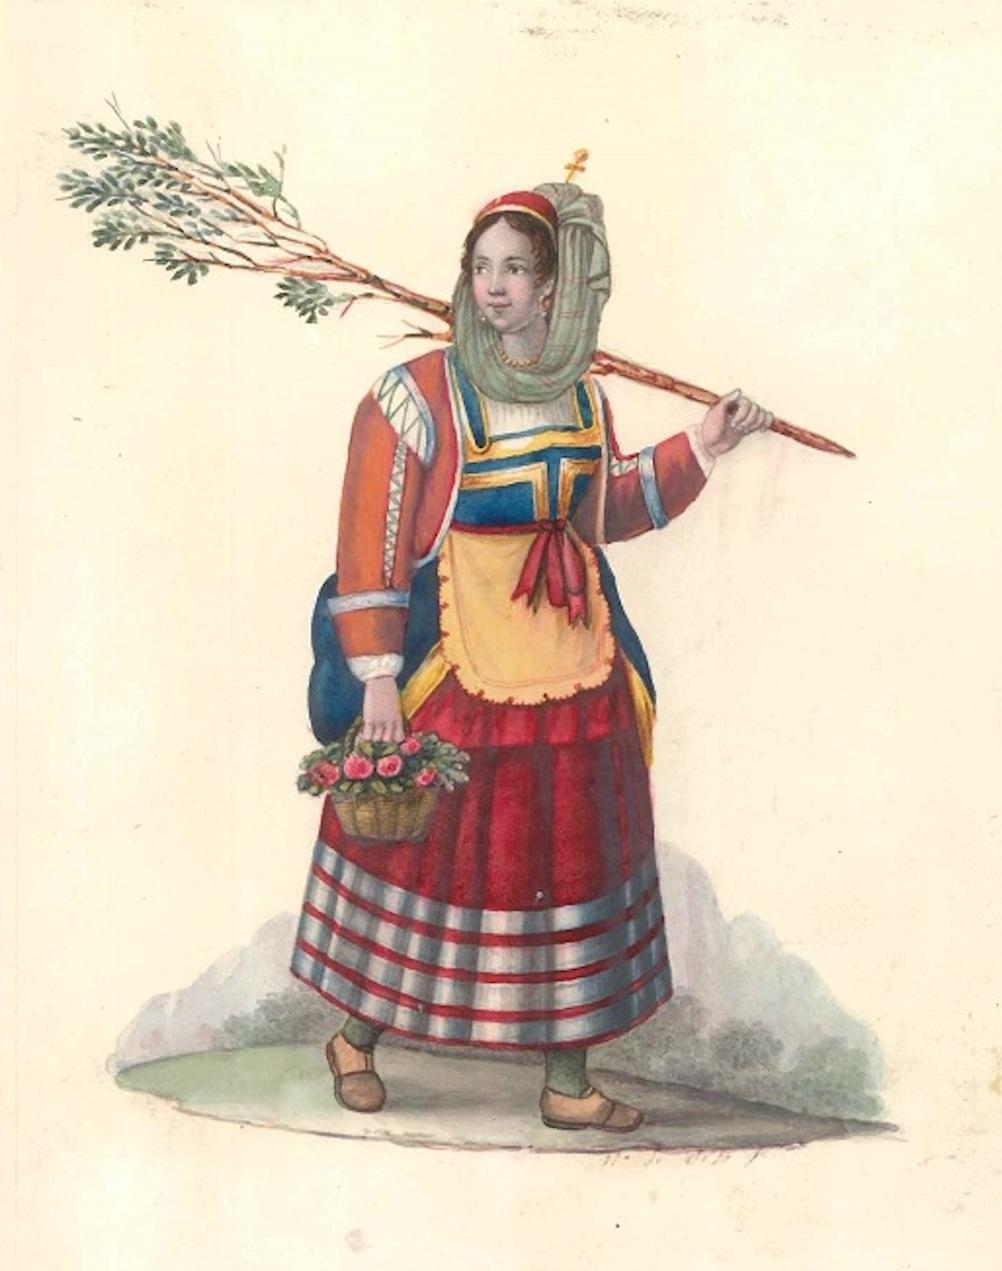 Woman with Flowers - Watercolor by M. De Vito - 1820 ca.